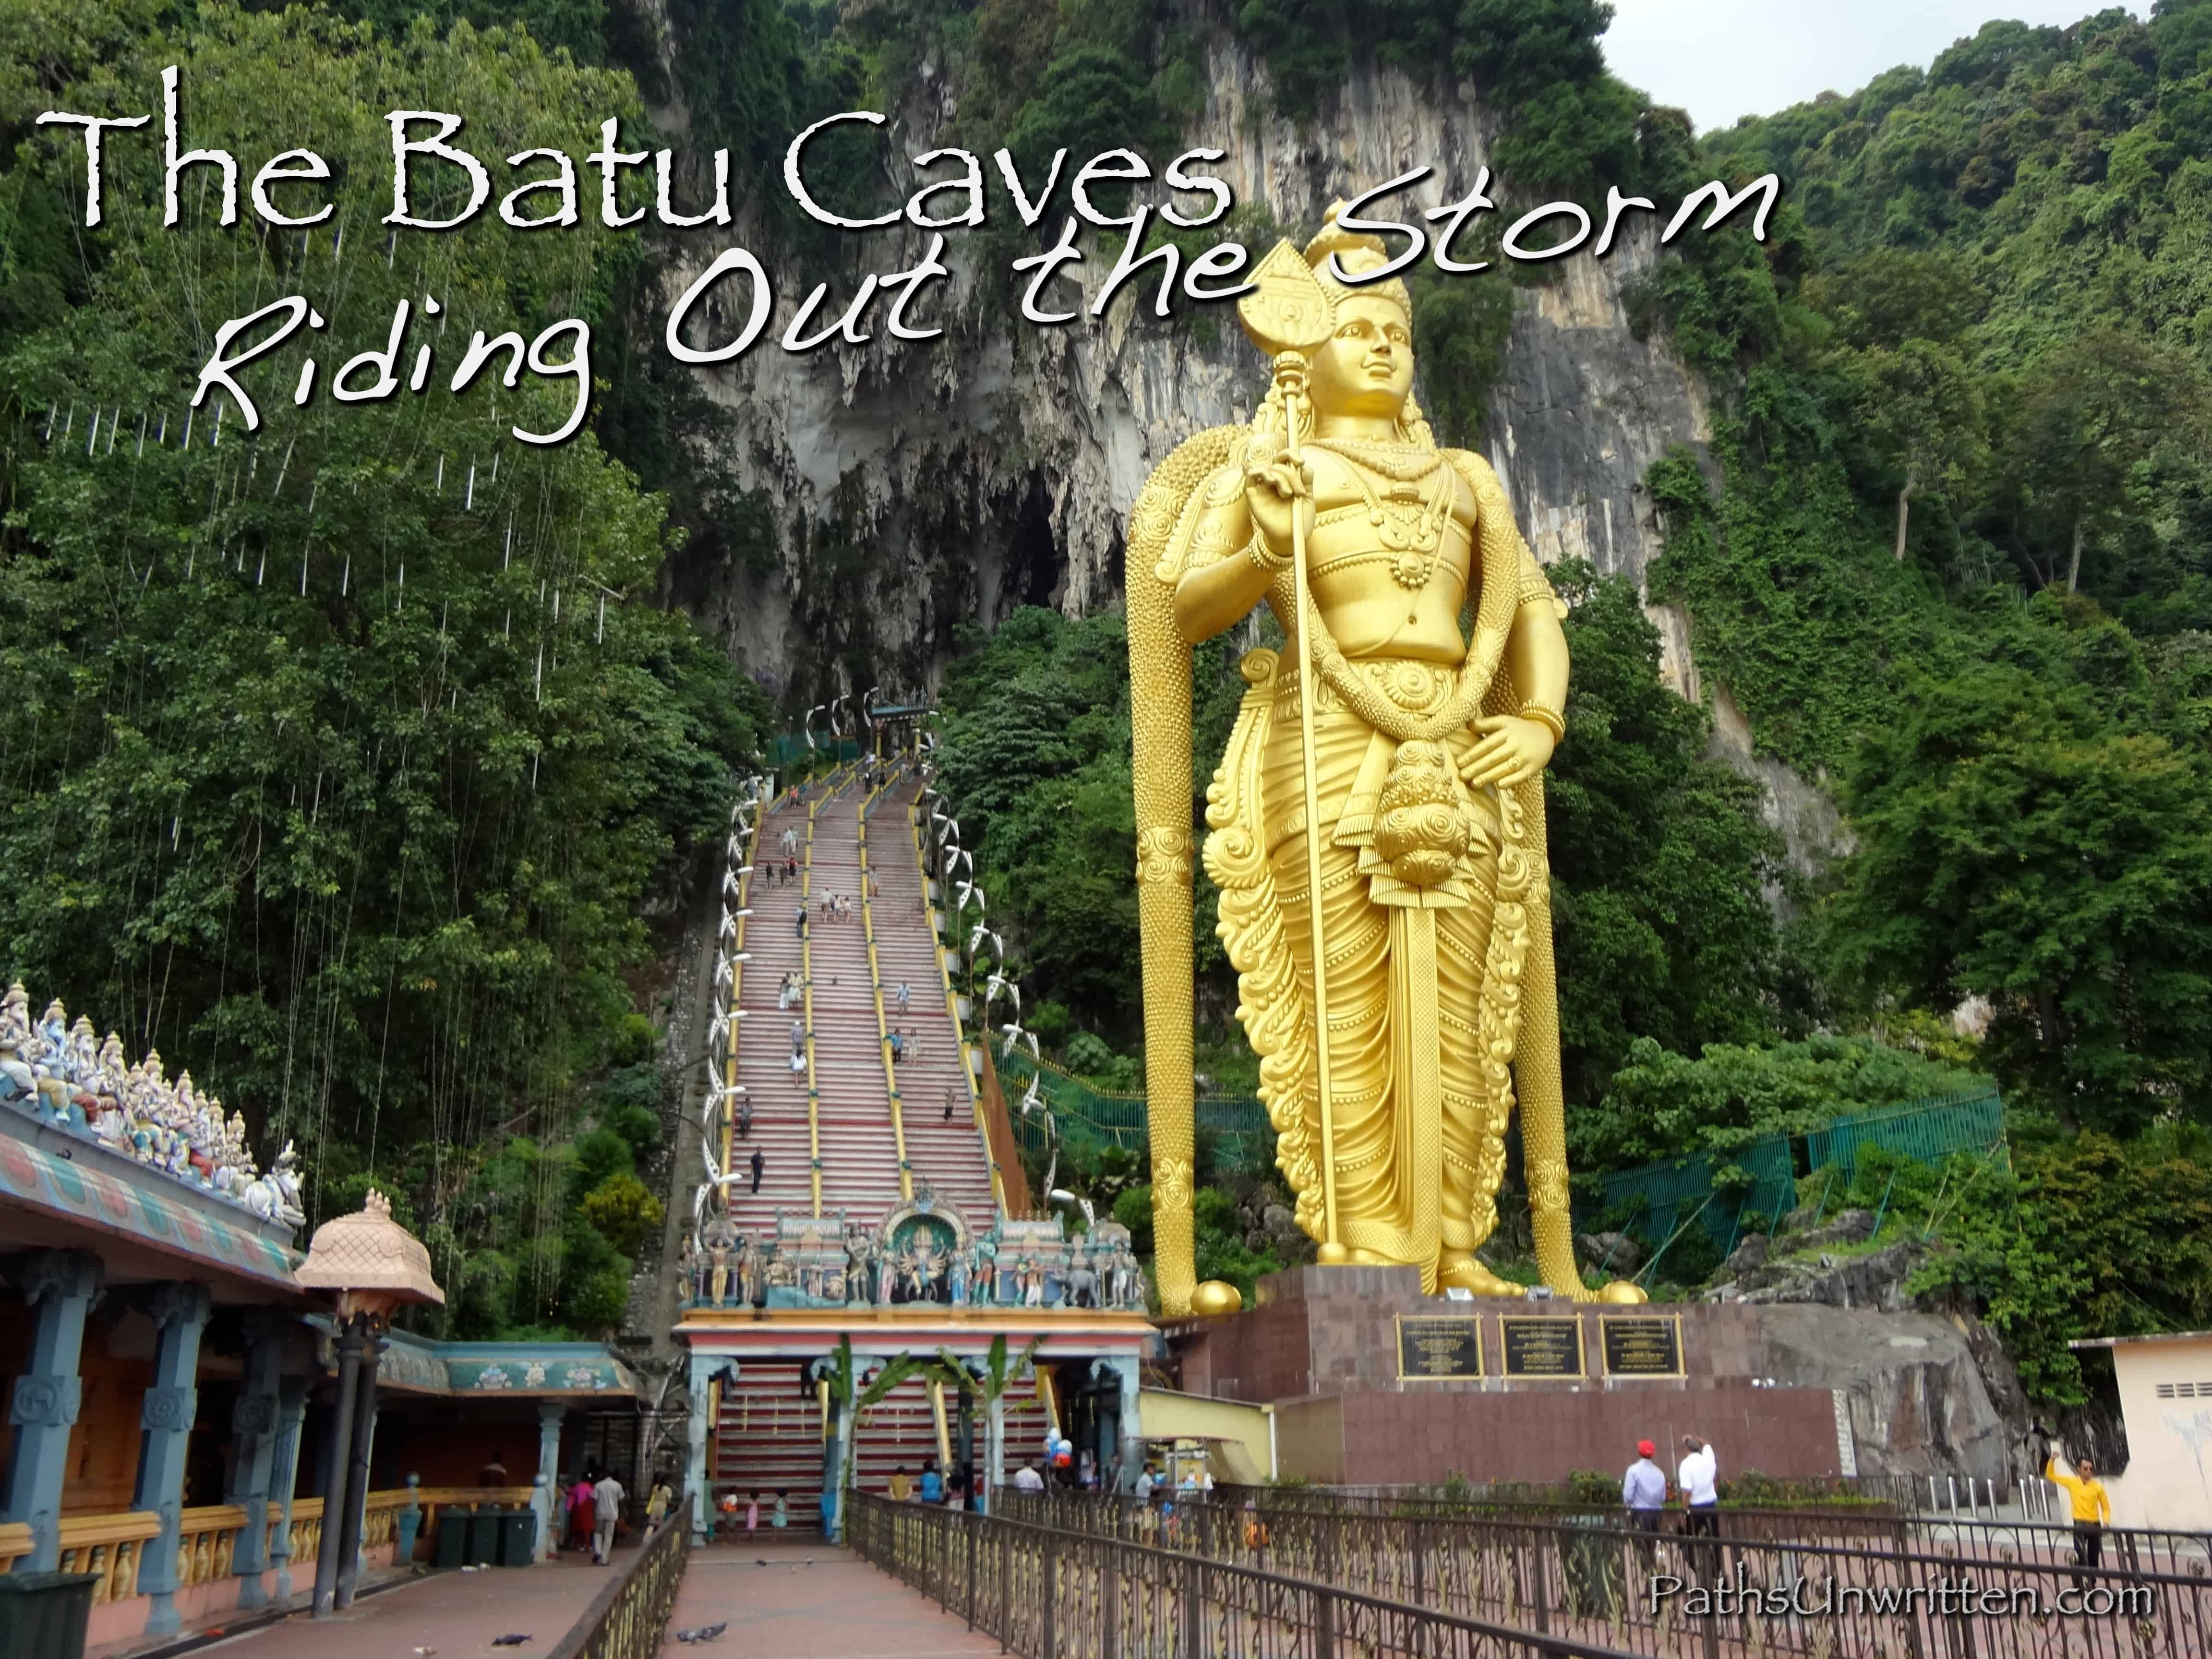 The Batu Caves – Riding Out the Storm